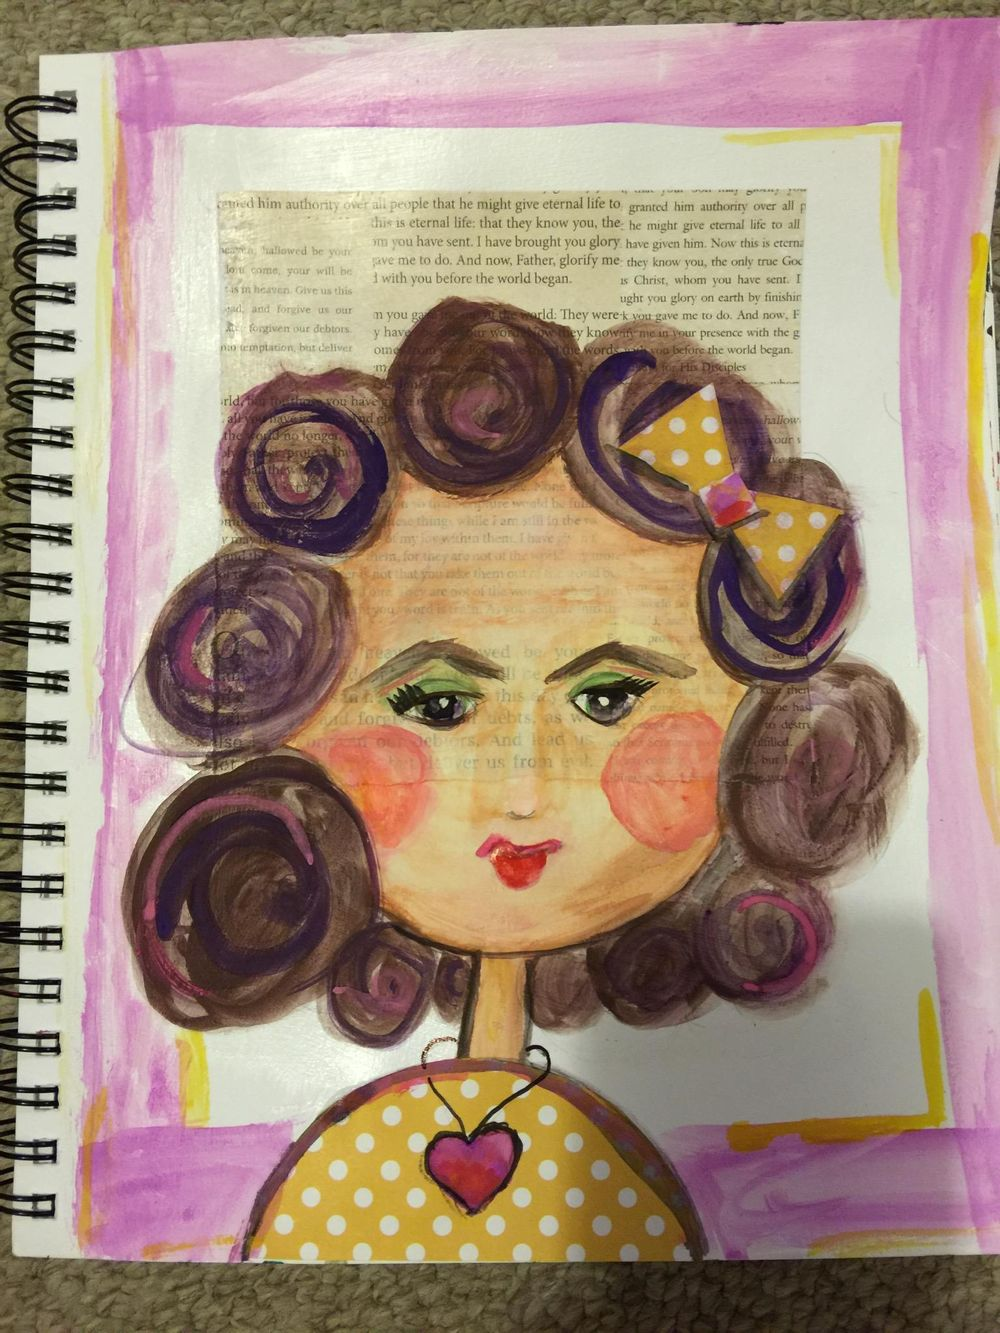 Curly Sue - image 1 - student project